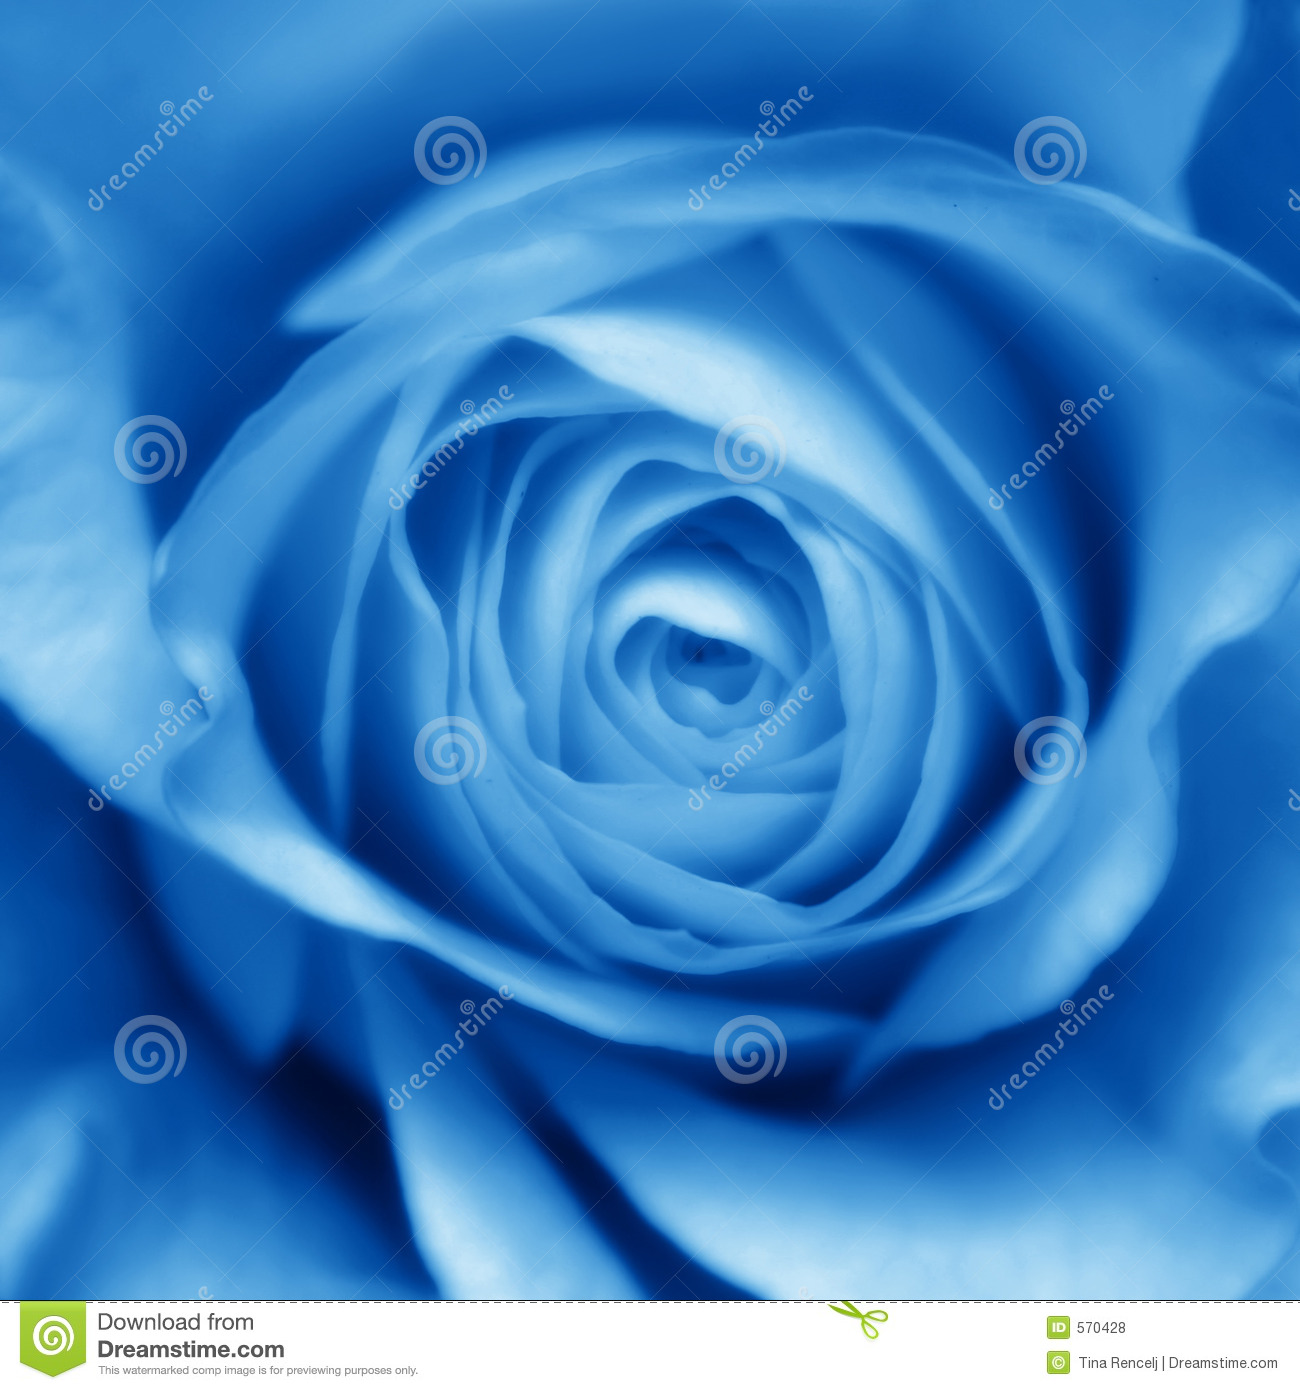 Bud blue rose